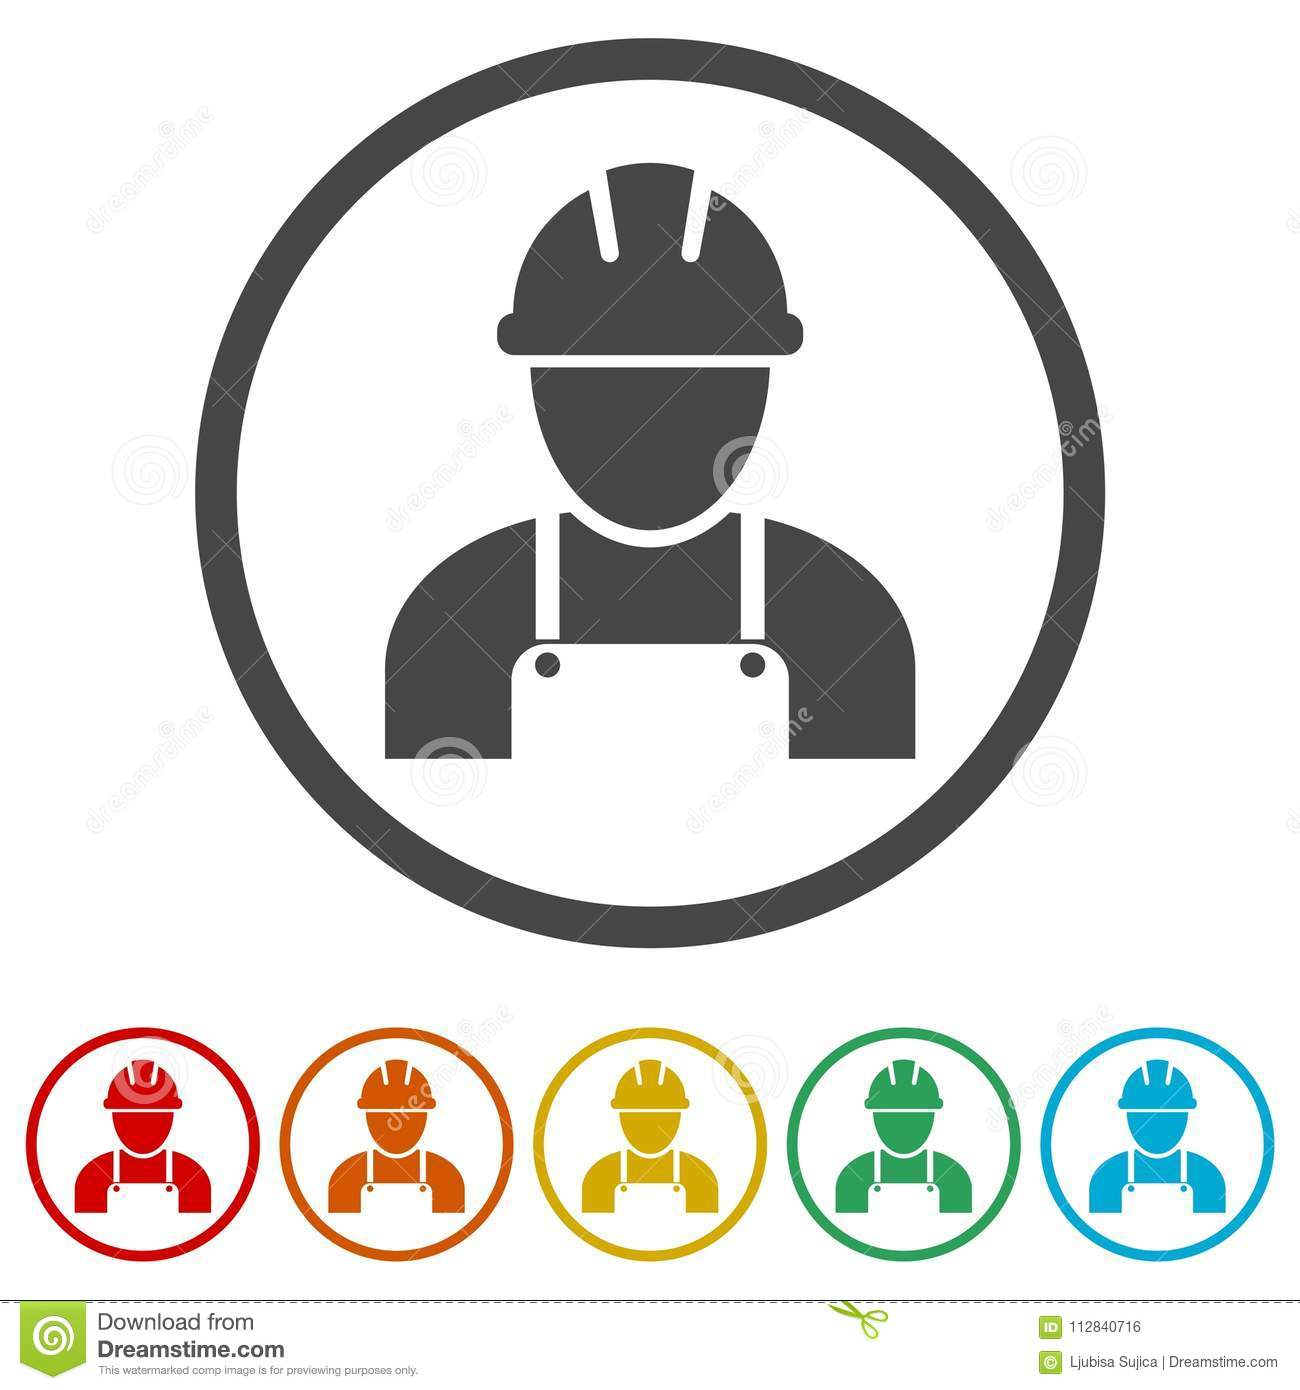 Contractor Icon Workers Icon 6 Colors Included Stock Vector Illustration Of Isolated Business 112840716